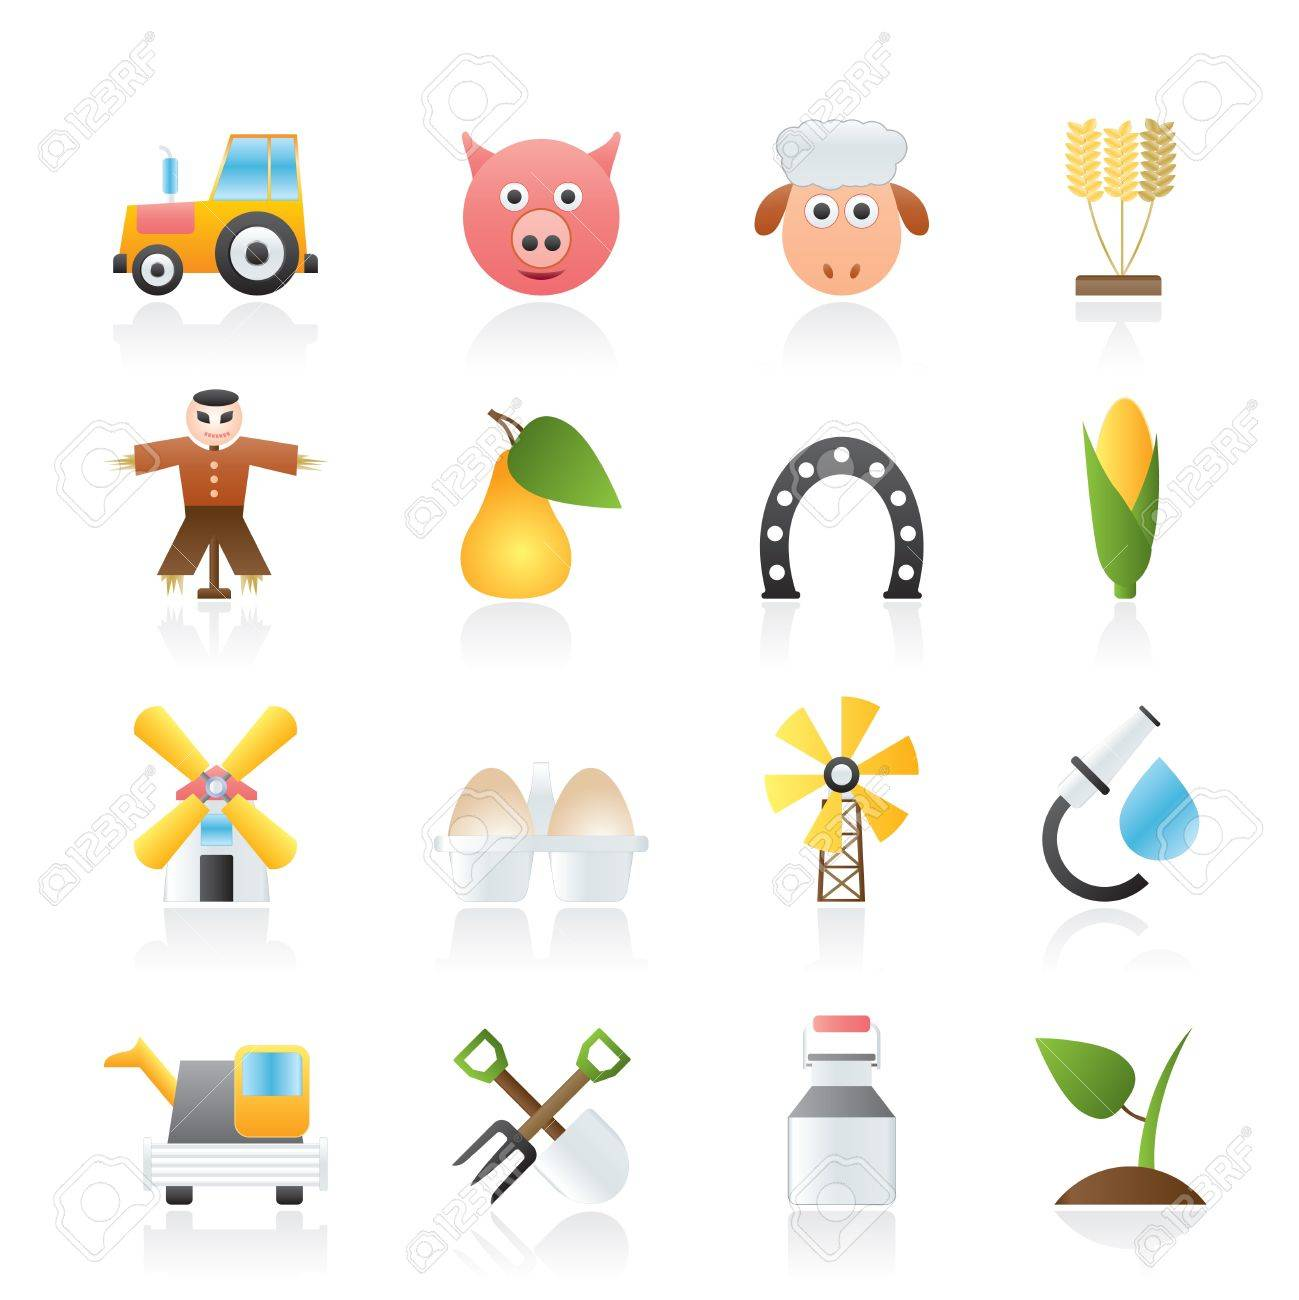 Agriculture and farming icons - icon set Stock Vector - 12200586